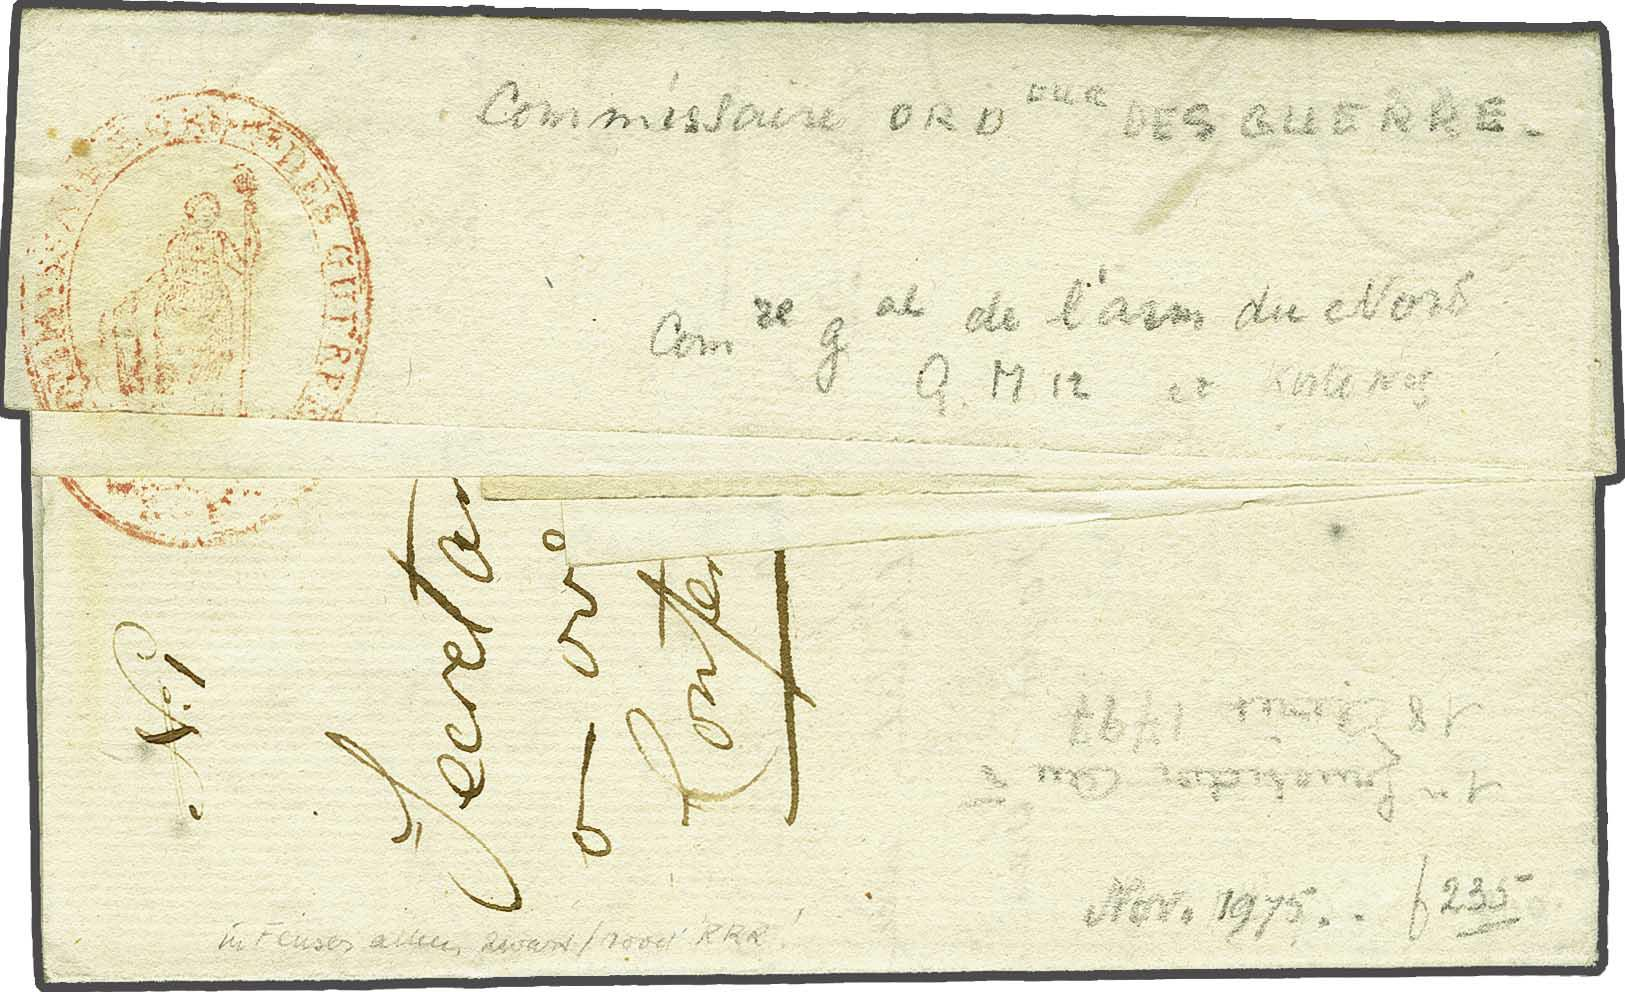 Lot 1703 - Netherlands and former colonies Netherlands -  Corinphila Veilingen Auction 245-246 Day 3 - Netherlands and former colonies - Single lots, Collections and lots, Boxes and literature